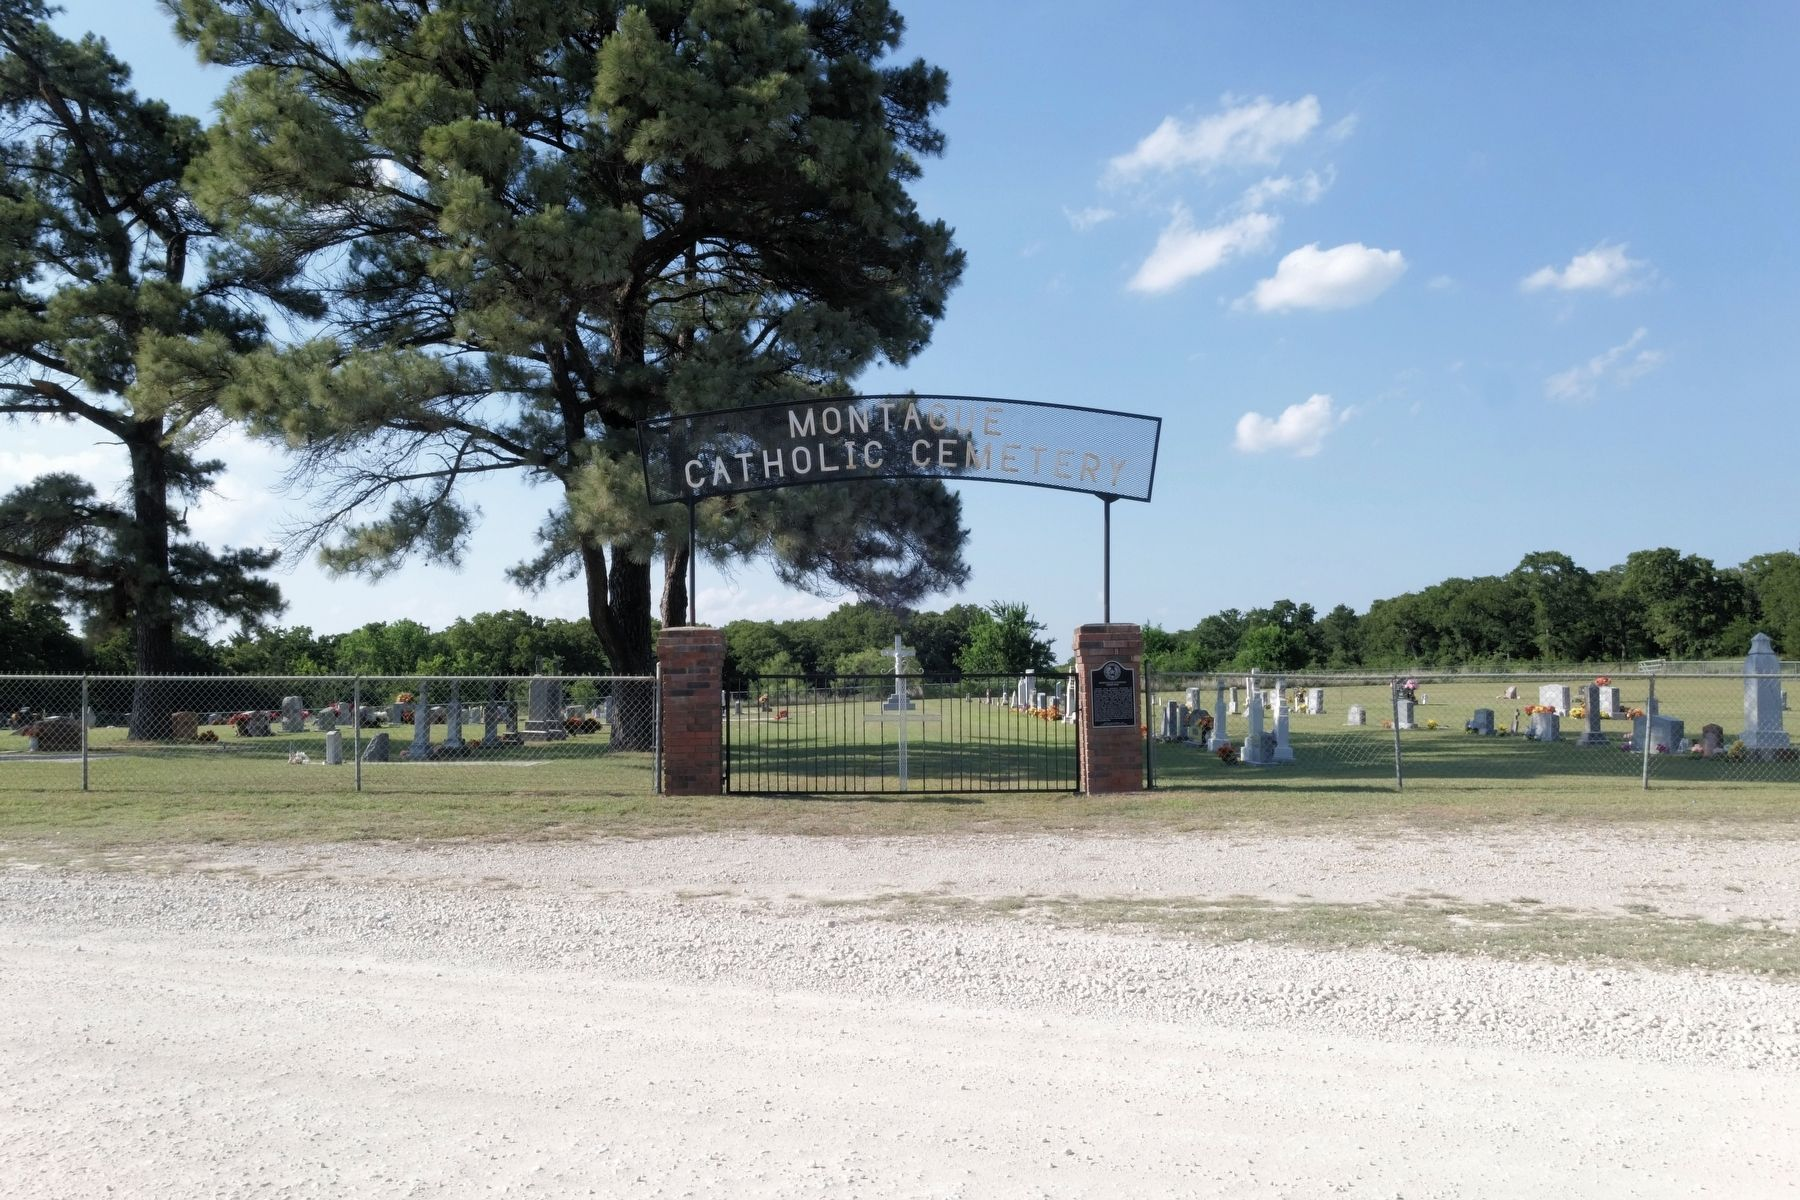 Montague Catholic Cemetery with Marker image. Click for full size.